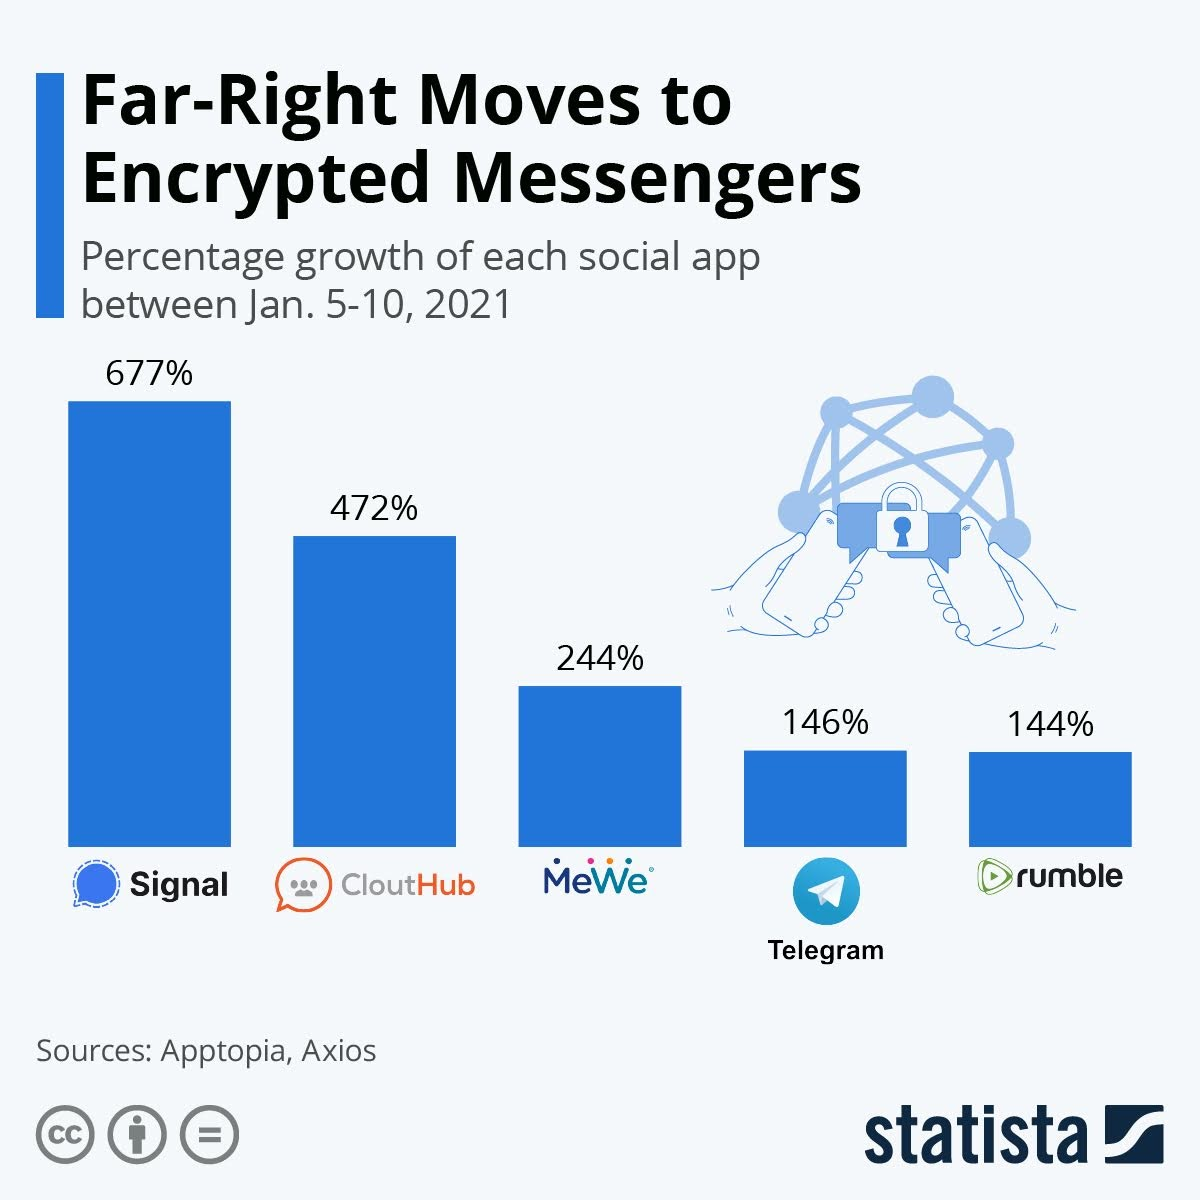 far-right-moves-to-encrypted-messengers-infographic